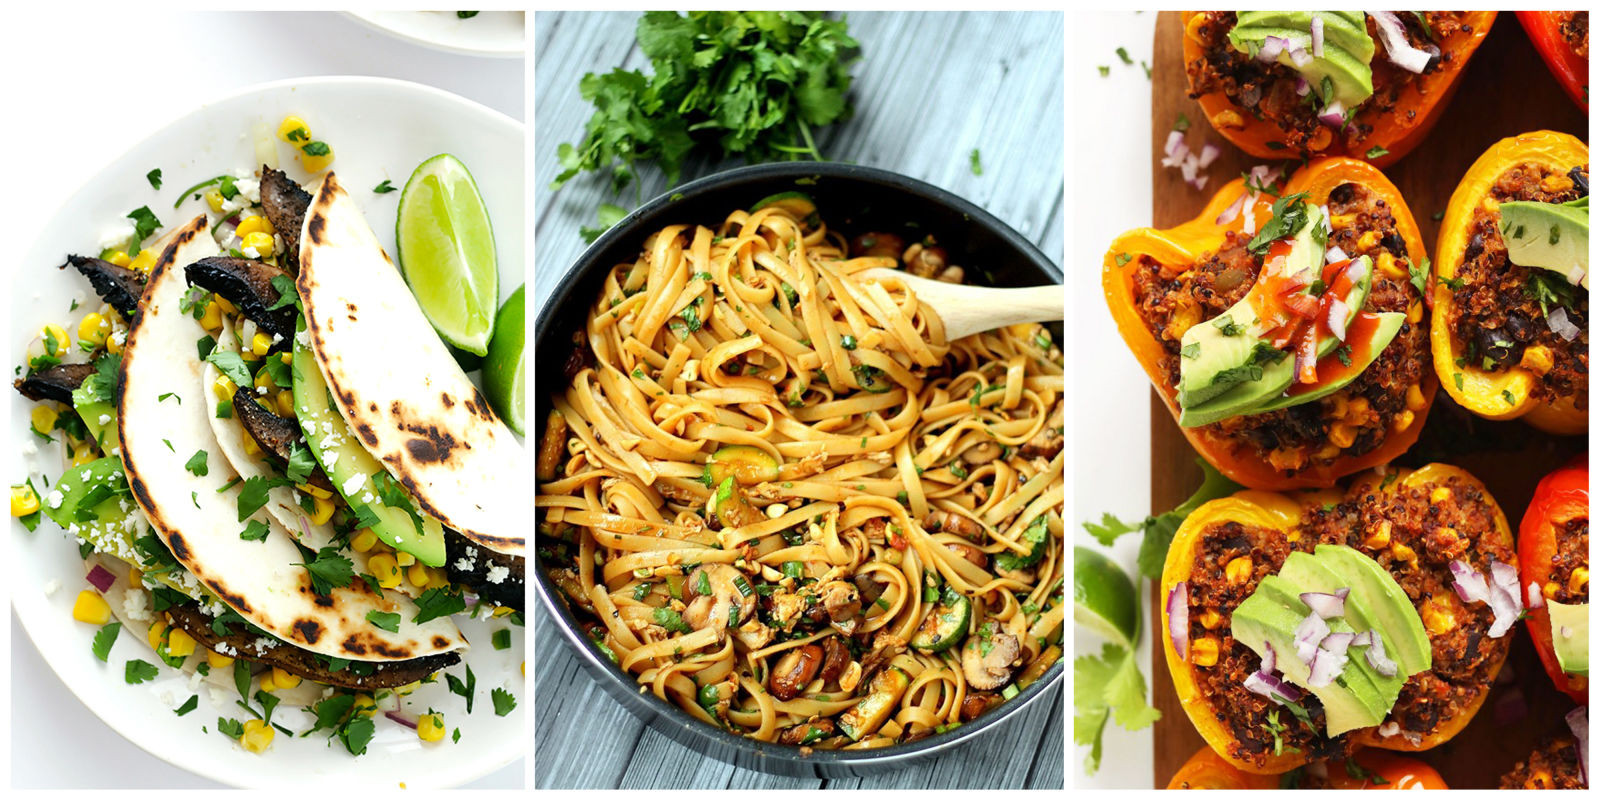 Quick Healthy Weeknight Dinners  10 Easy Weeknight Dinner Recipes Fast Healthy Meal Ideas